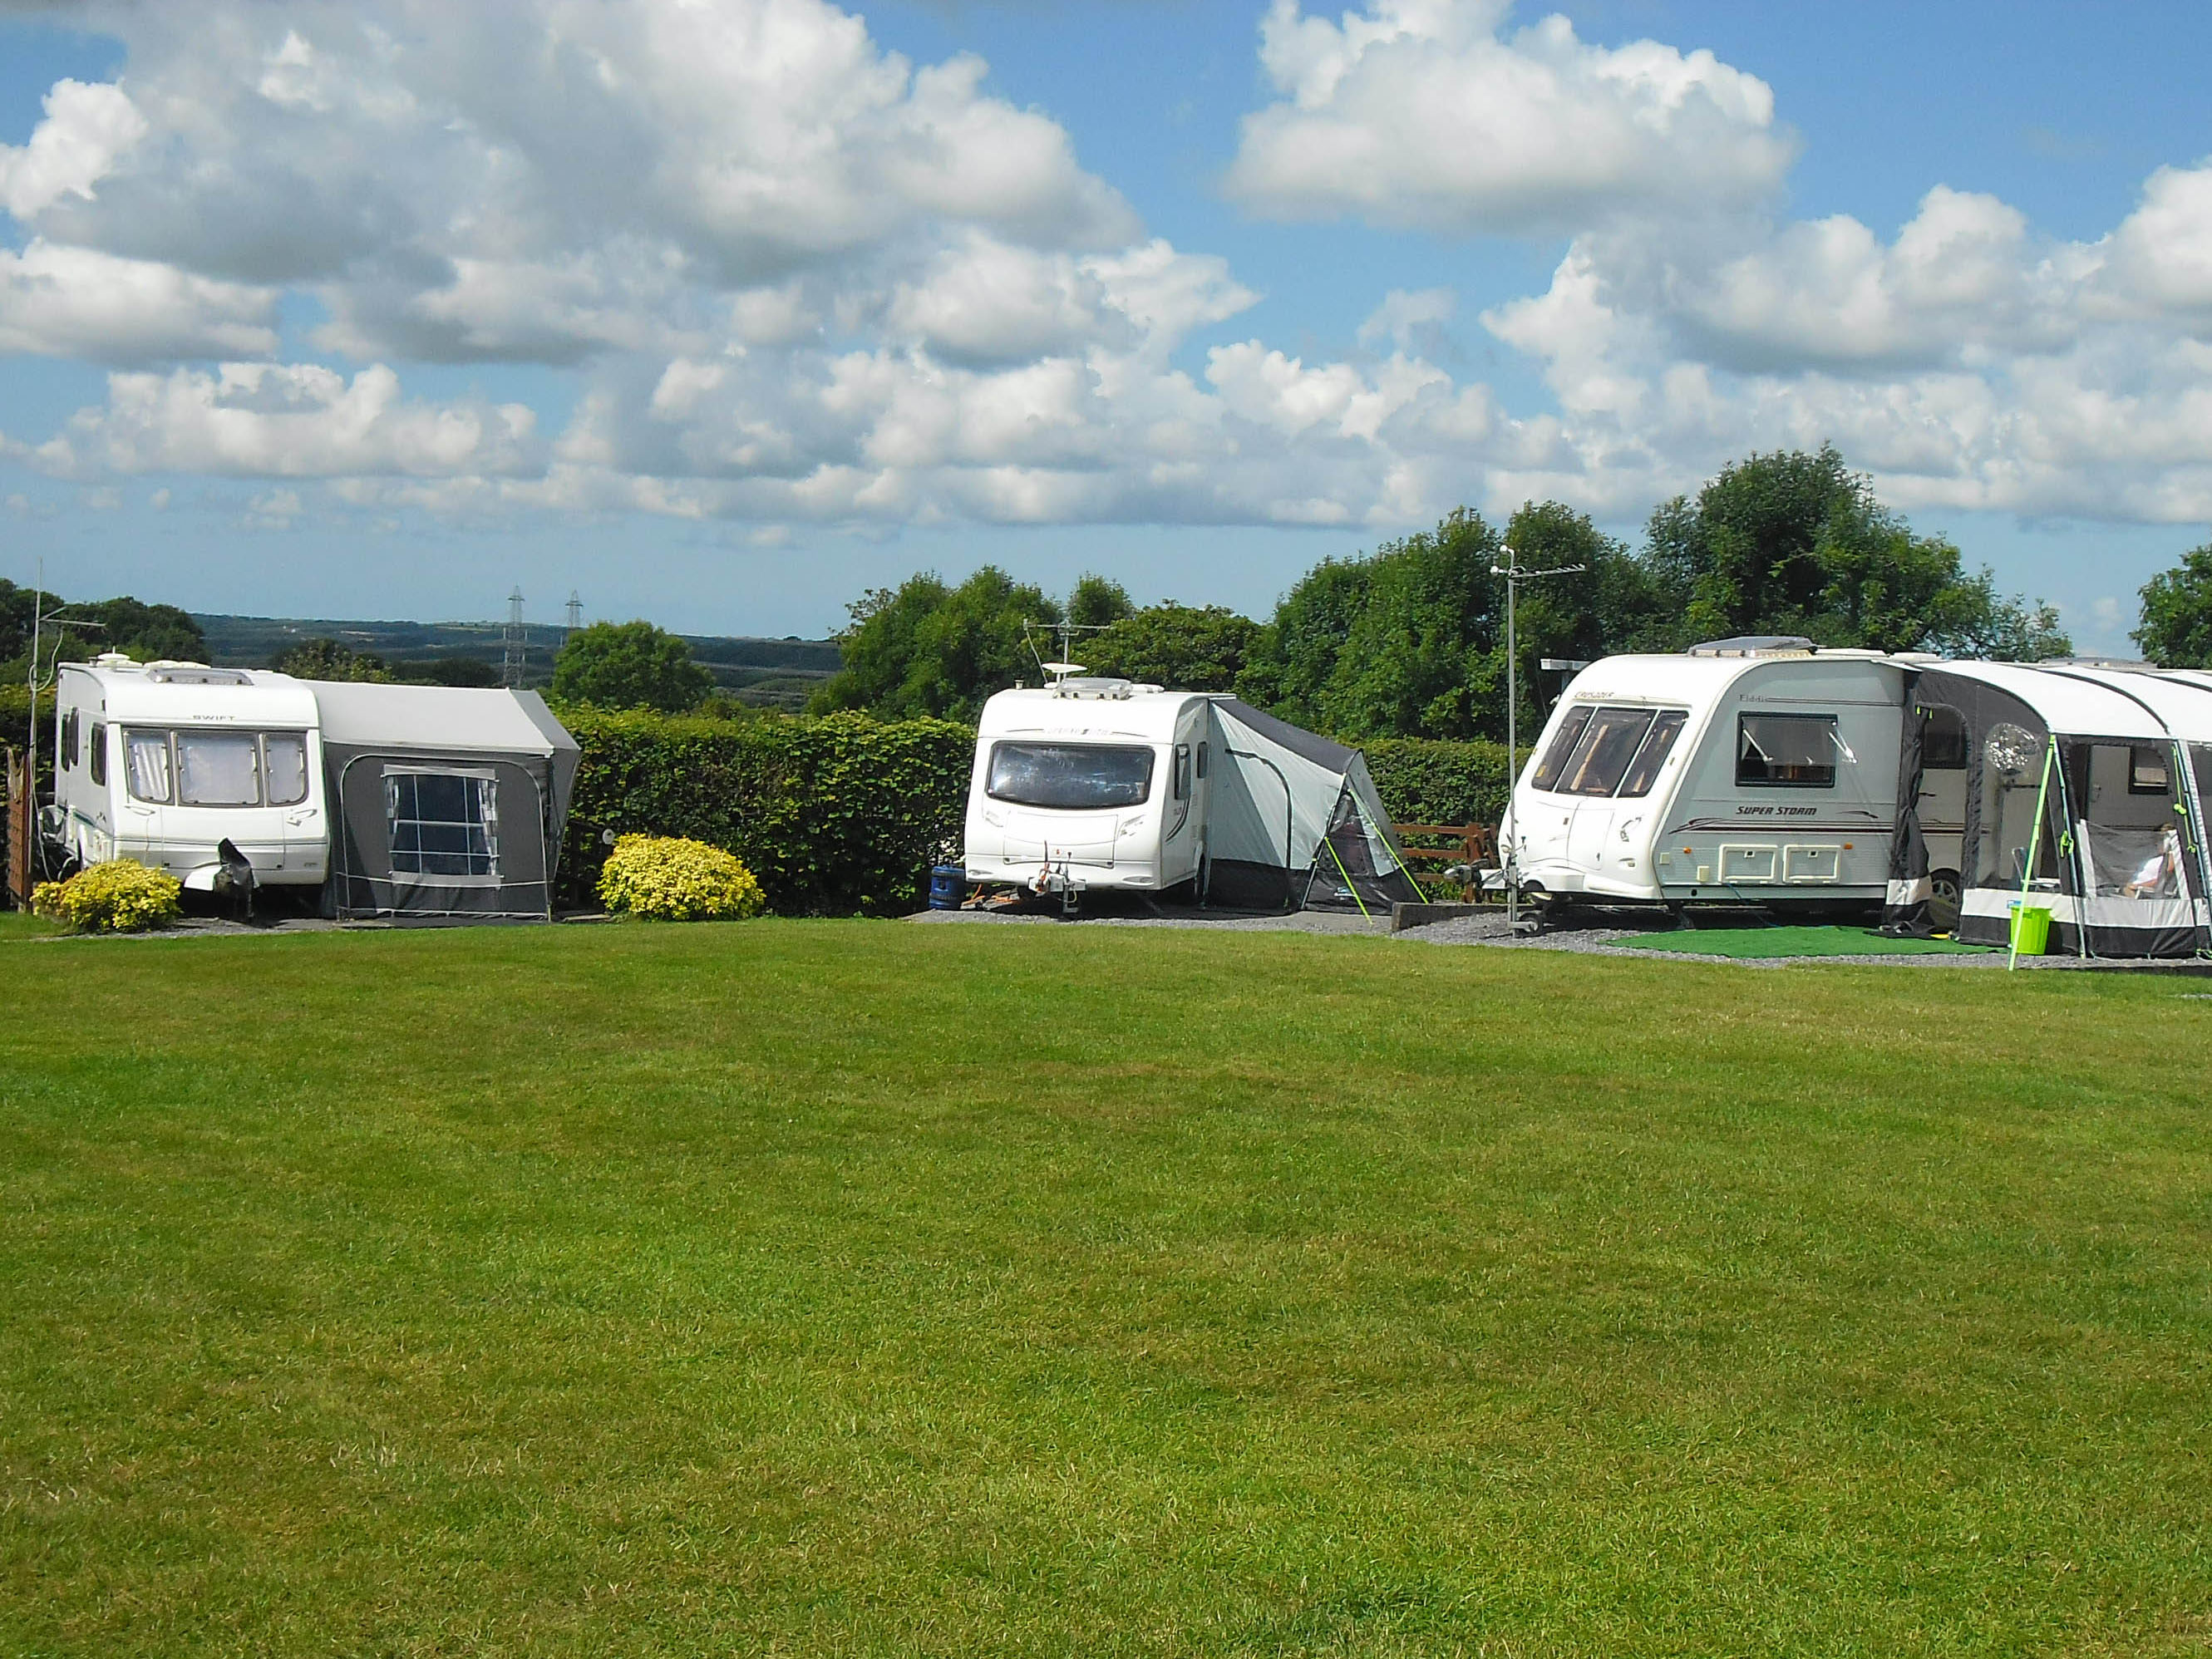 Stone Pitt Holiday Park on Caravan Sitefinder